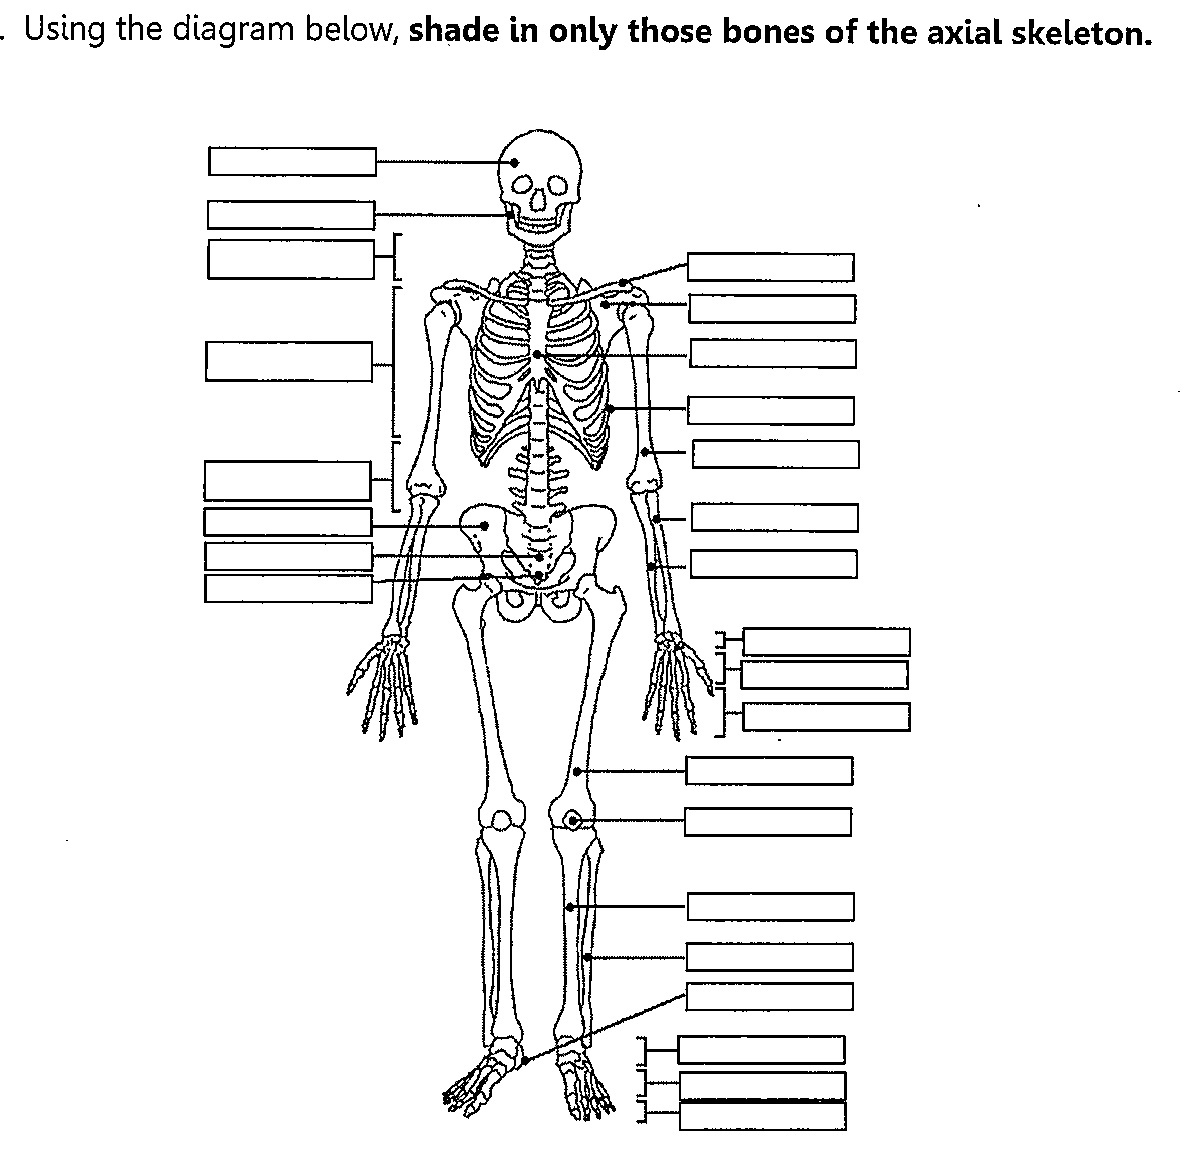 worksheet Nursing Worksheets axial skeleton worksheet fill in the blank yahoo image search results